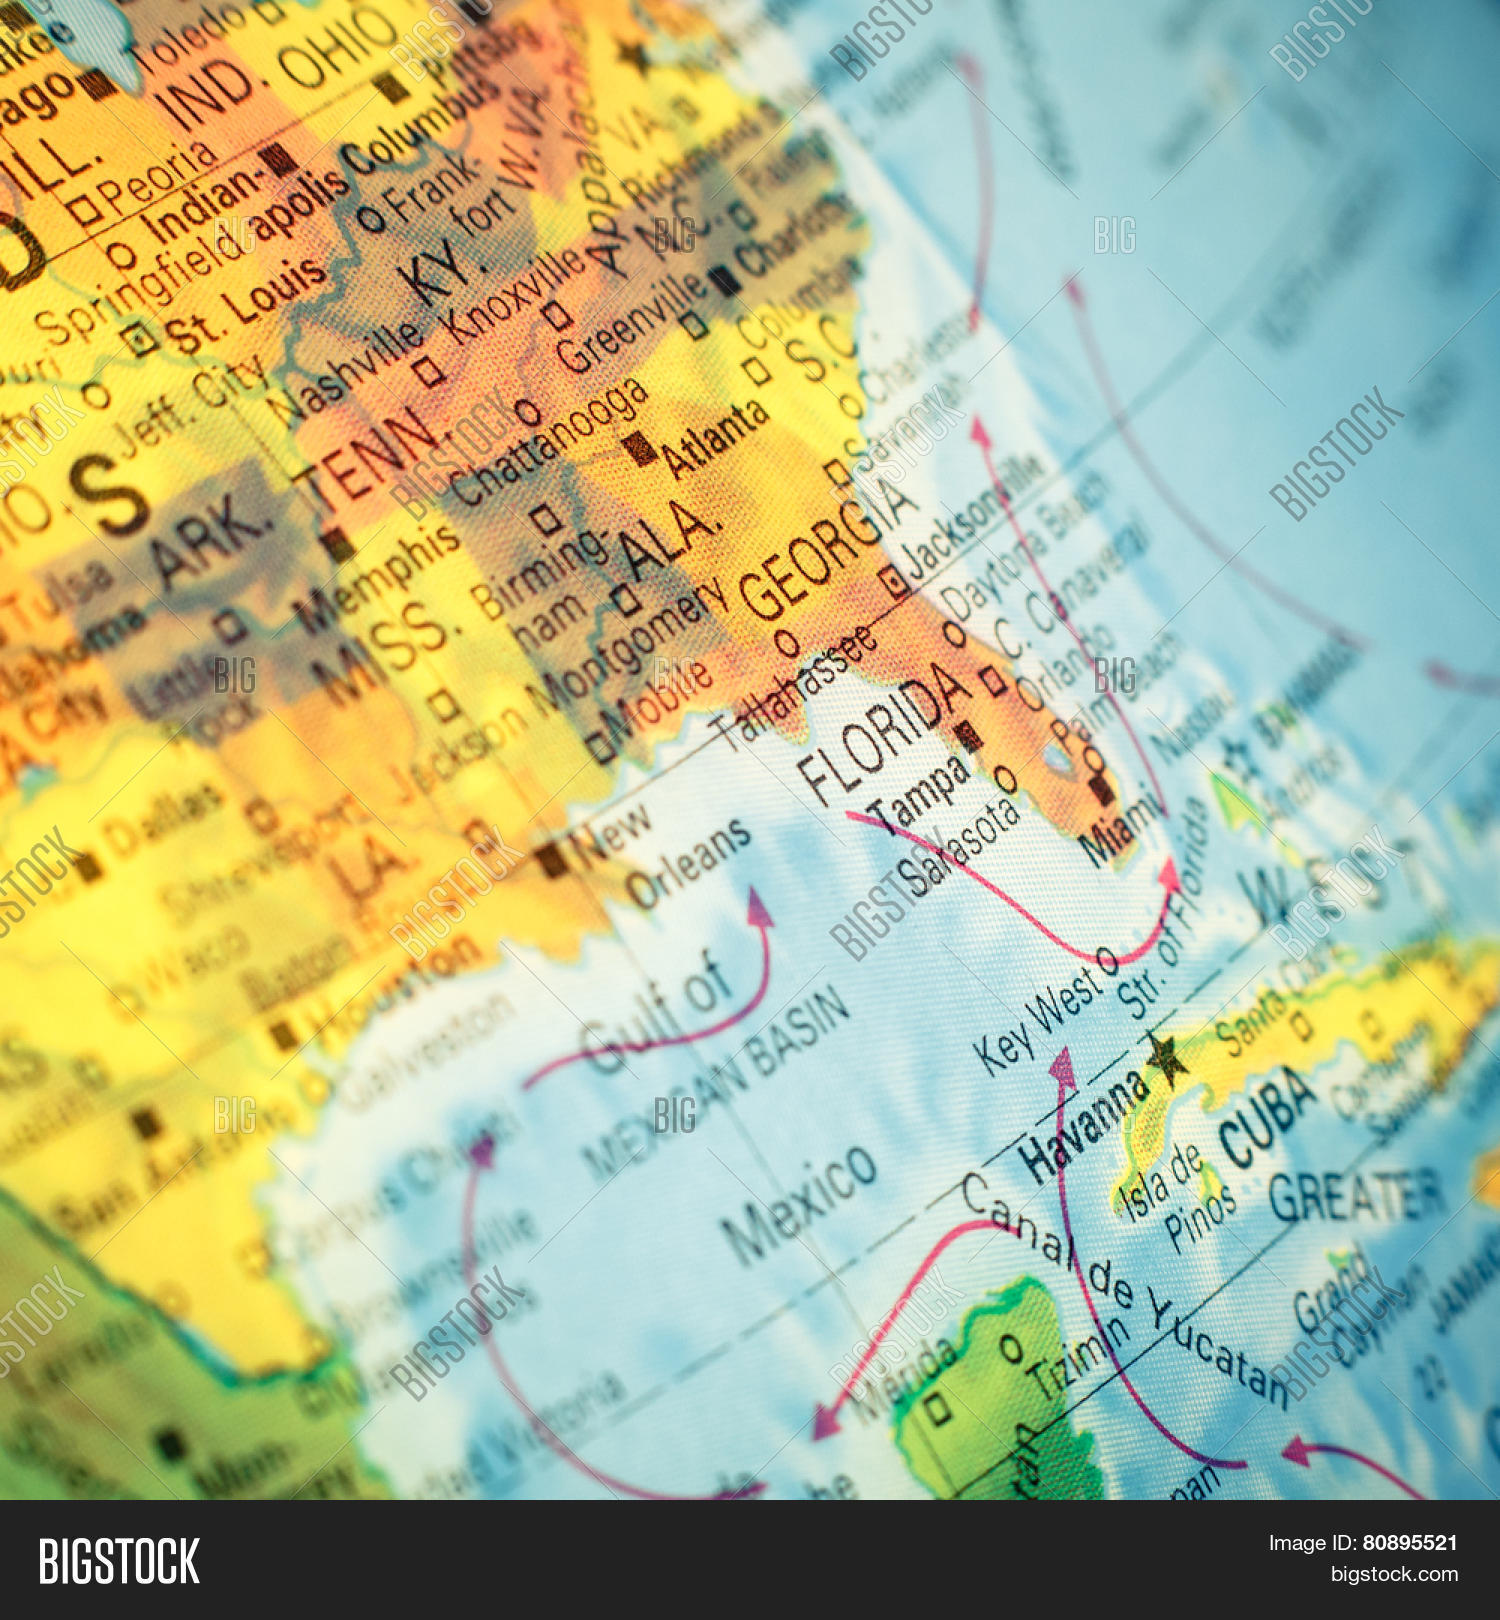 Map South East USA . Image & Photo (Free Trial) | Bigstock